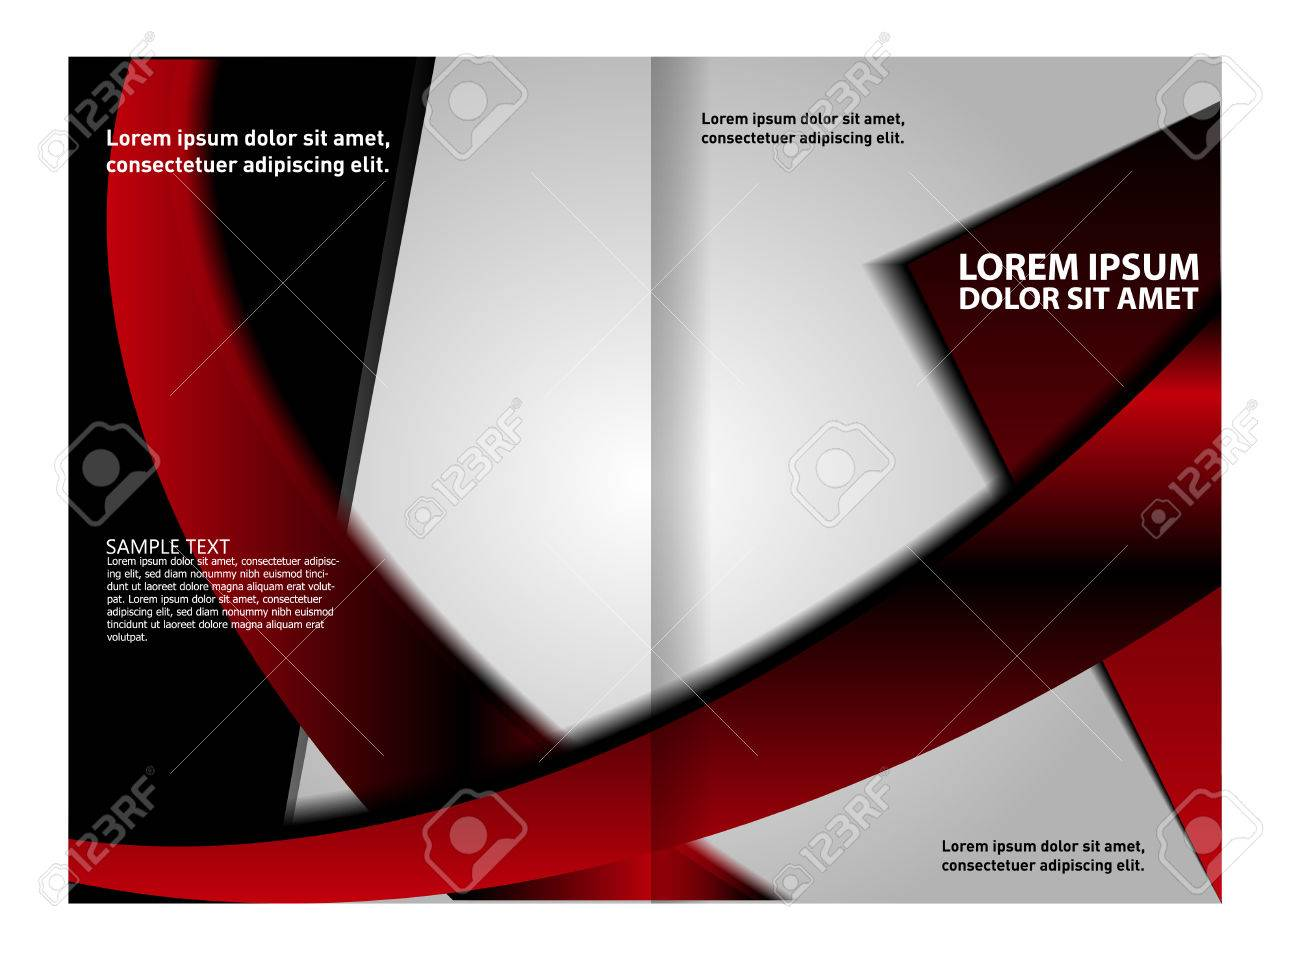 Vector - Vector Modern Bi-Fold Brochure Design Template With Red Background